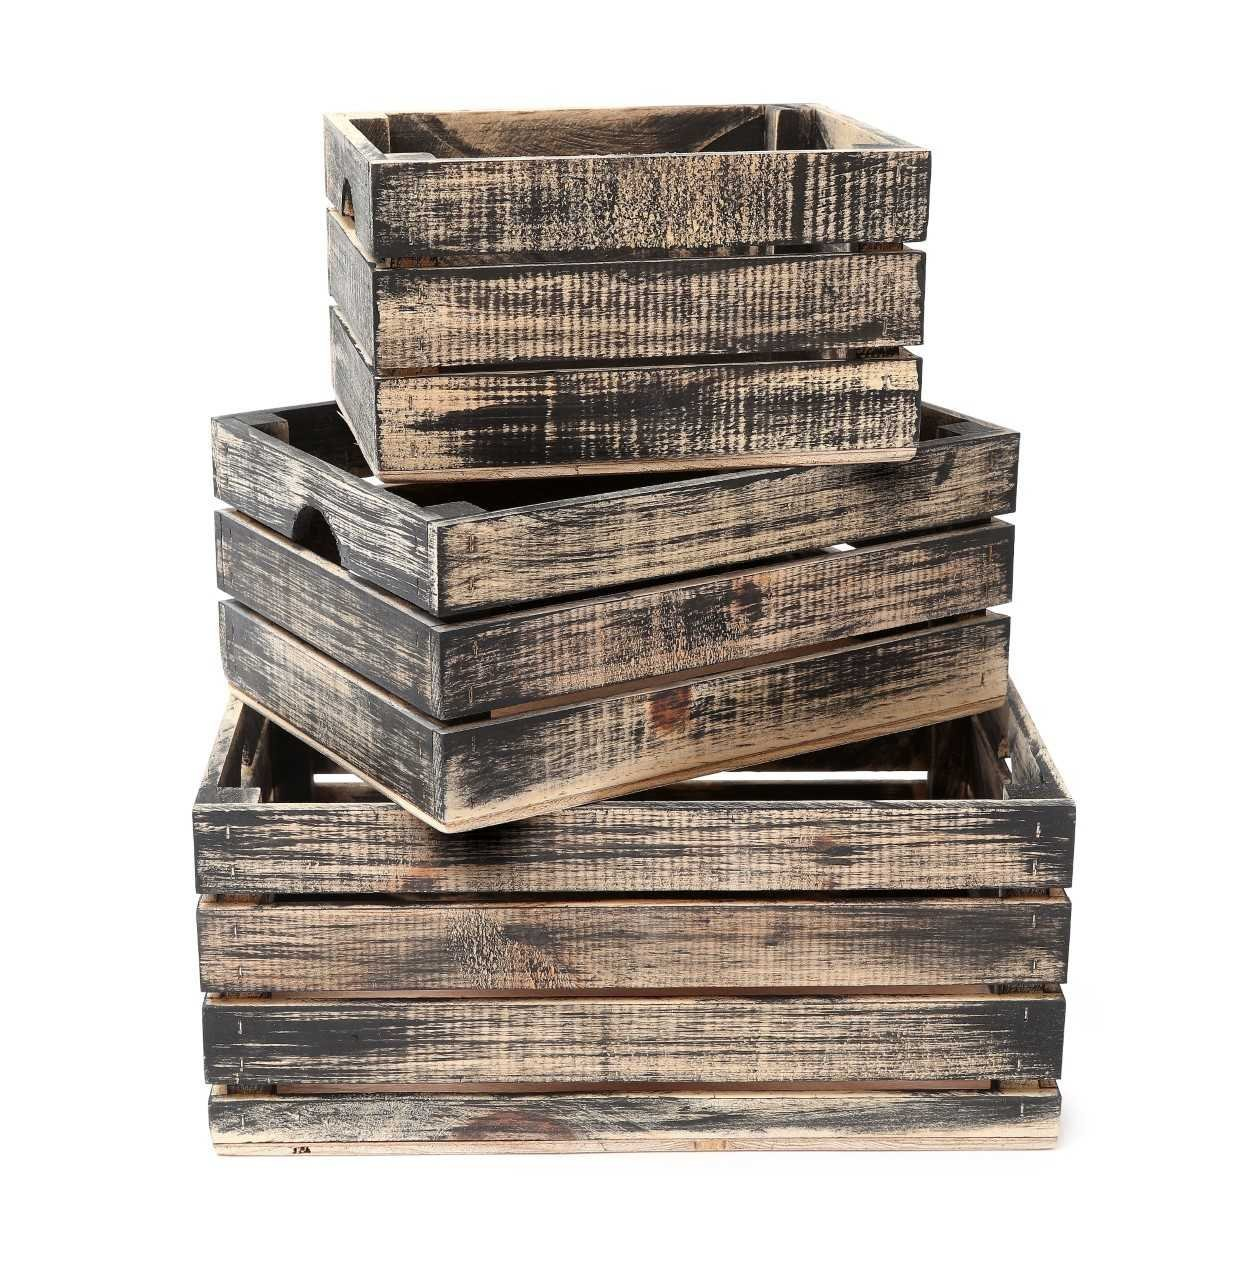 Winship Stake and Lath, Inc. Rustic Decorative Wood Crates (Set of 3) - Cottage Grey Distressed by Winship Stake and Lath, Inc. (Image #1)